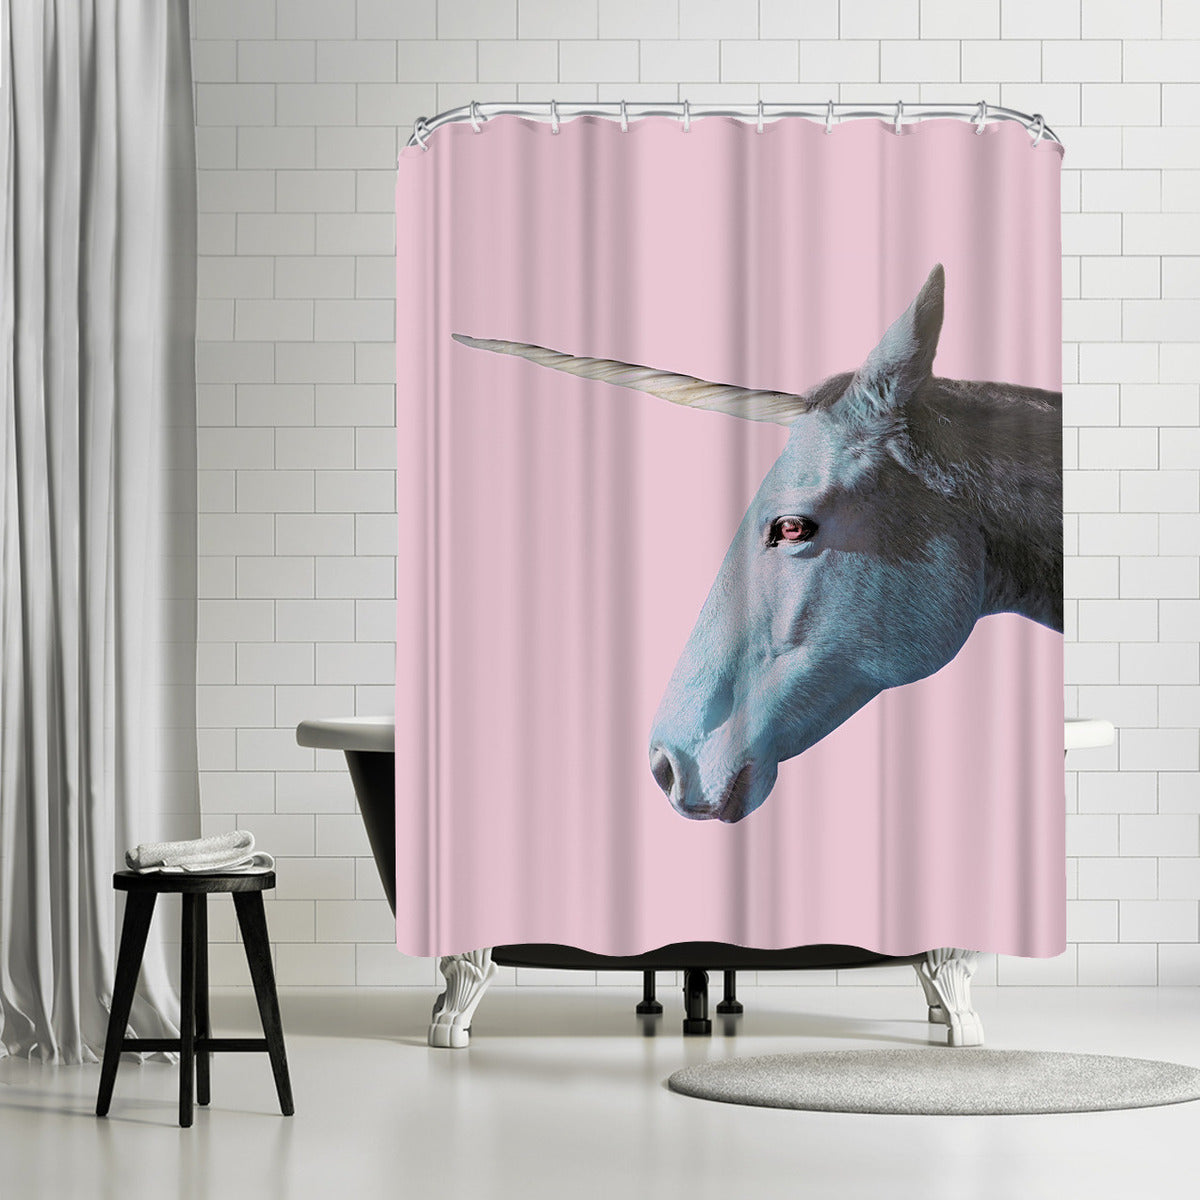 I Really Believe In Myself by Emanuela Carratoni Shower Curtain -  - Americanflat